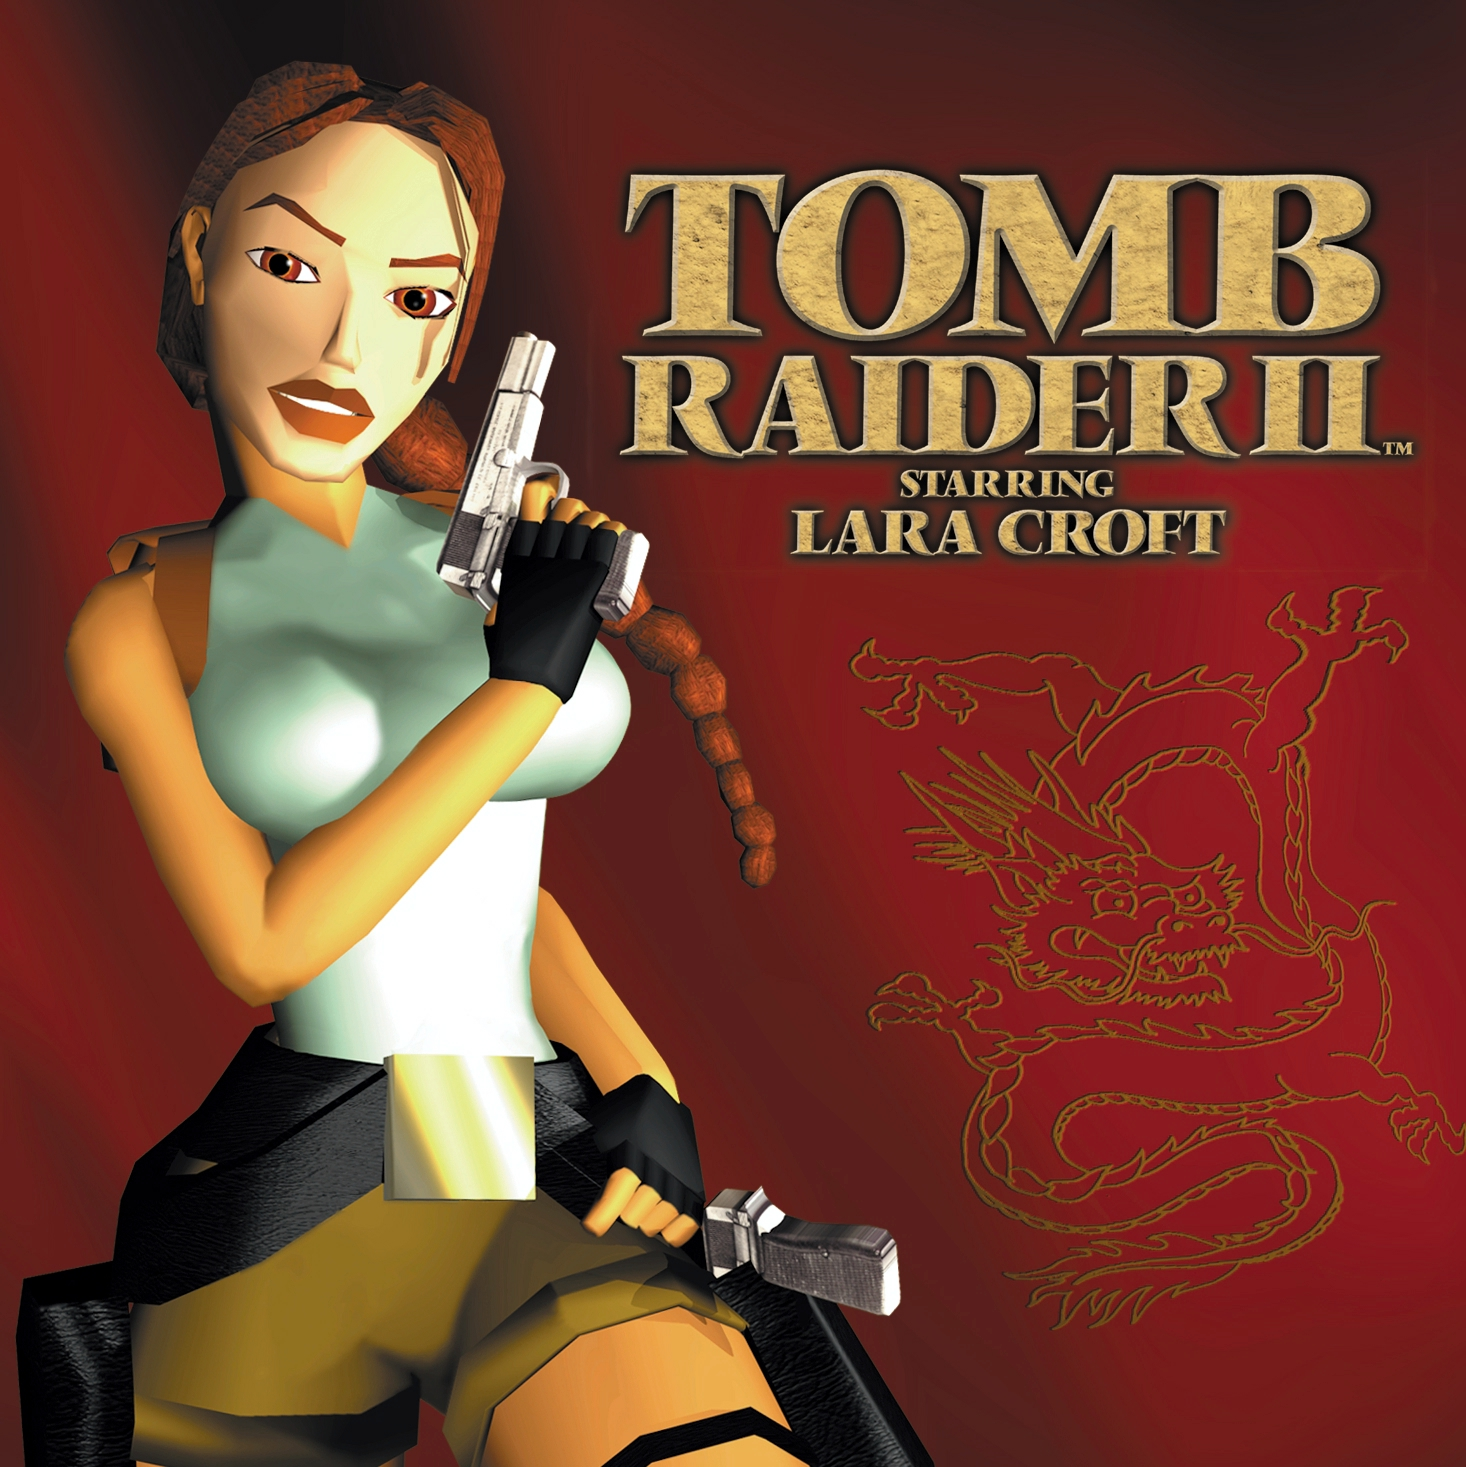 Tomb Raider Ii Starring Lara Croft Video Game 1997 Imdb